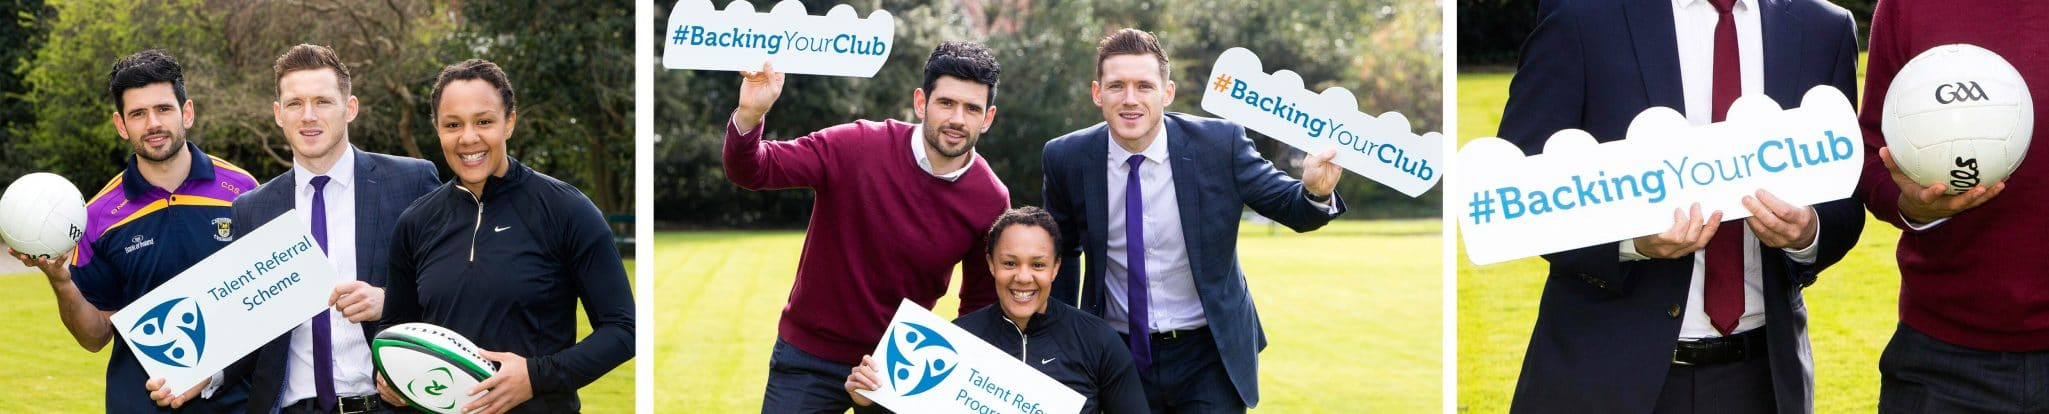 Backing Your Club Cian O Sullivan, Paul Flynn, Sophie Spence Lincoln Recruitment